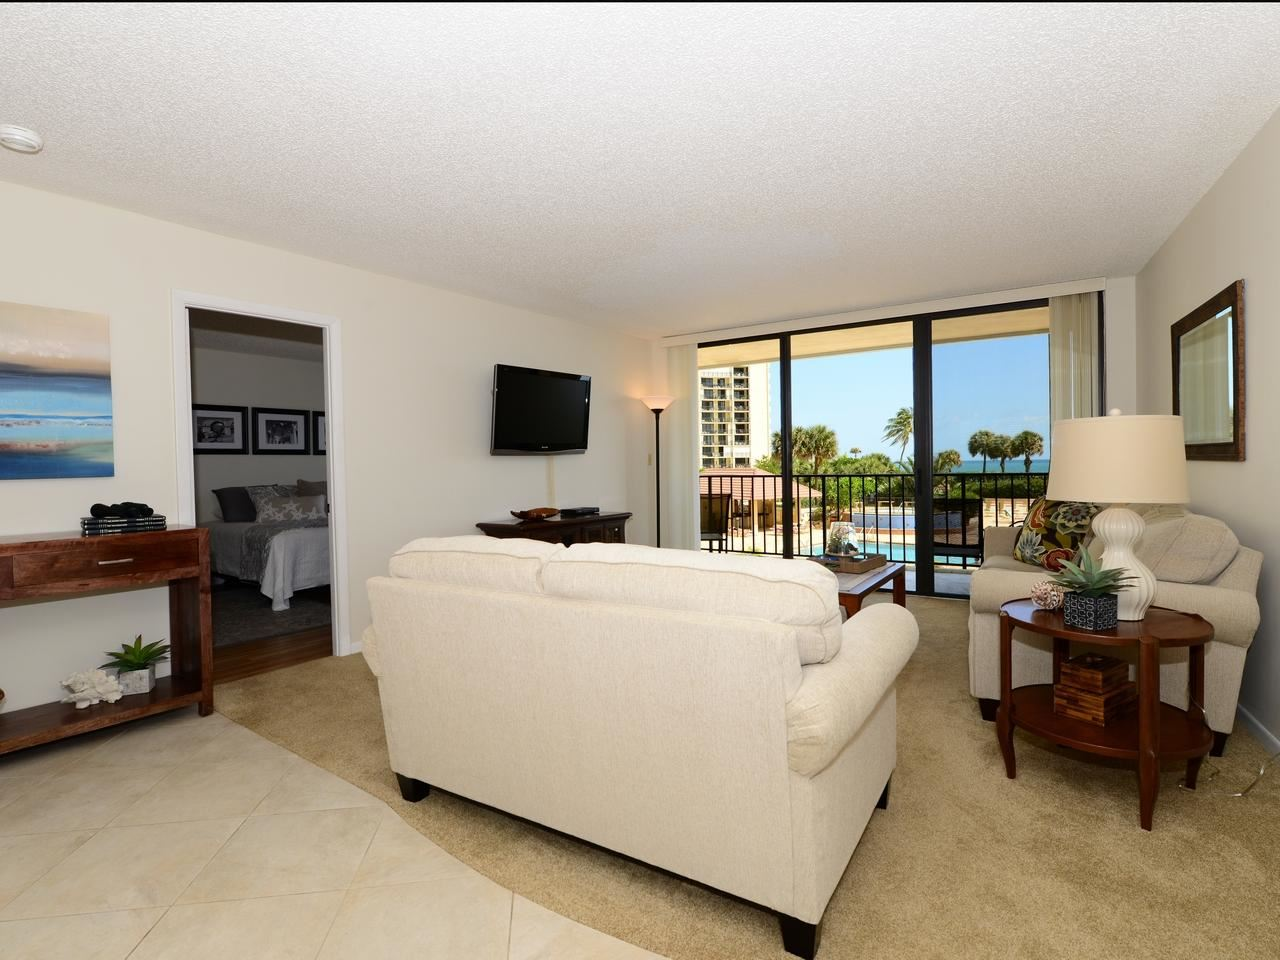 Photo of 100 Ocean Trail Way #205, Jupiter, FL 33477 (MLS # RX-10656258)